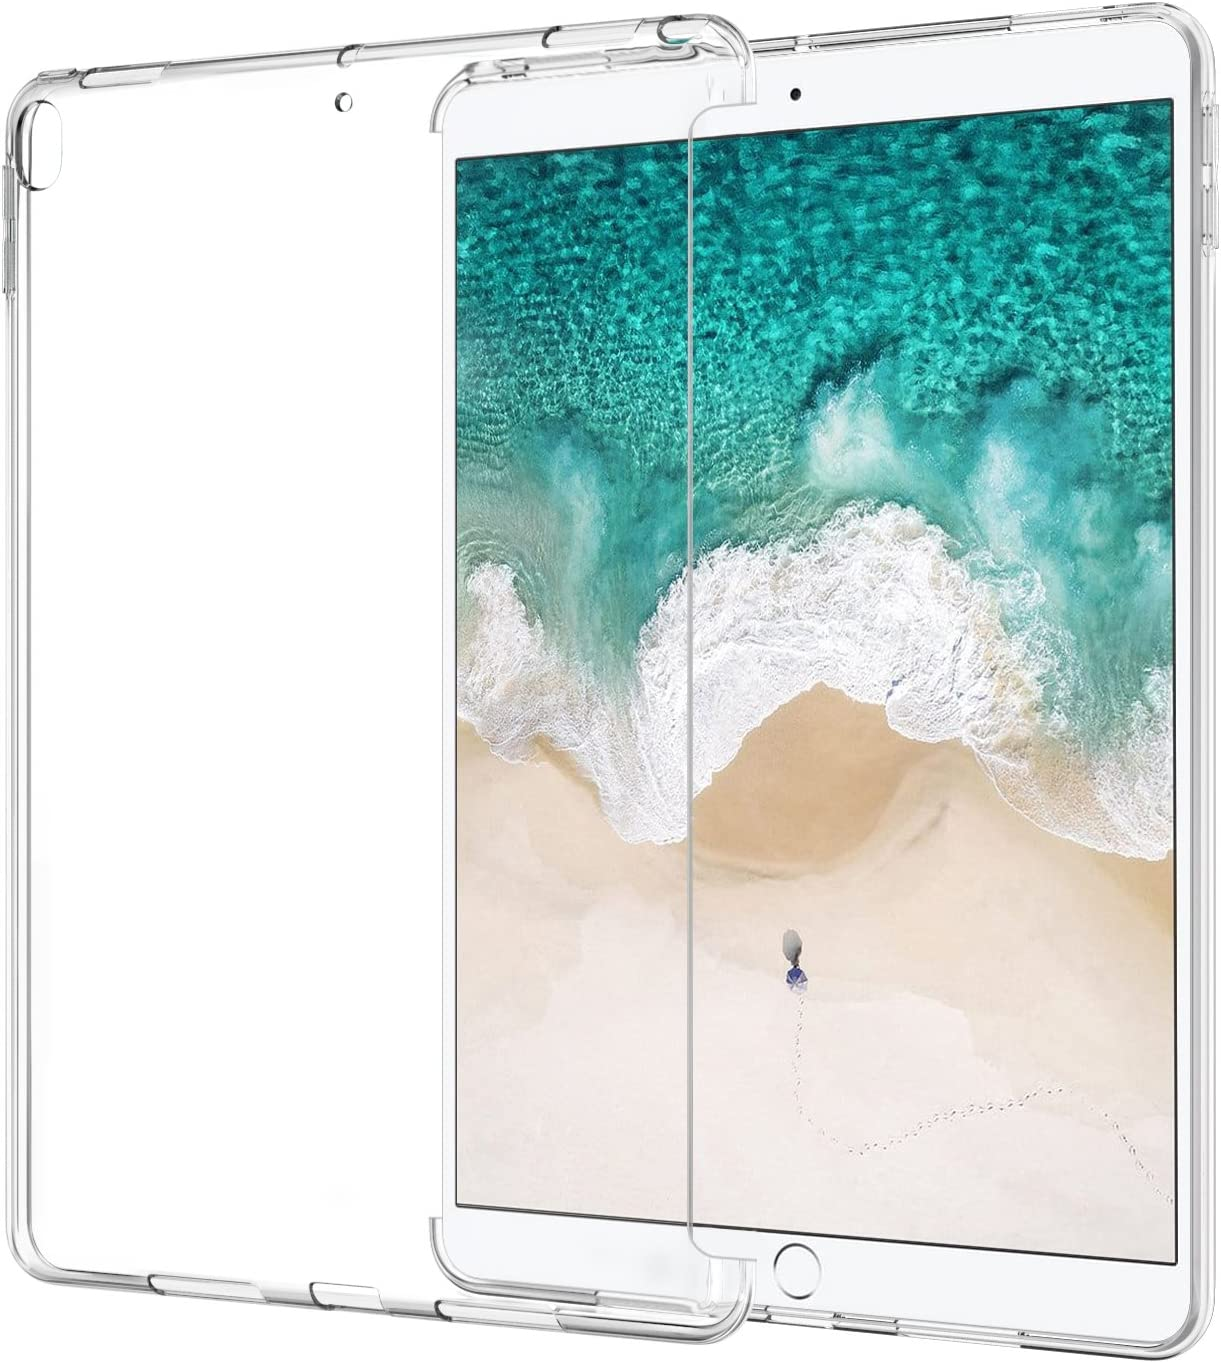 ATiC Case Fit New iPad Air (3rd Generation) 10.5